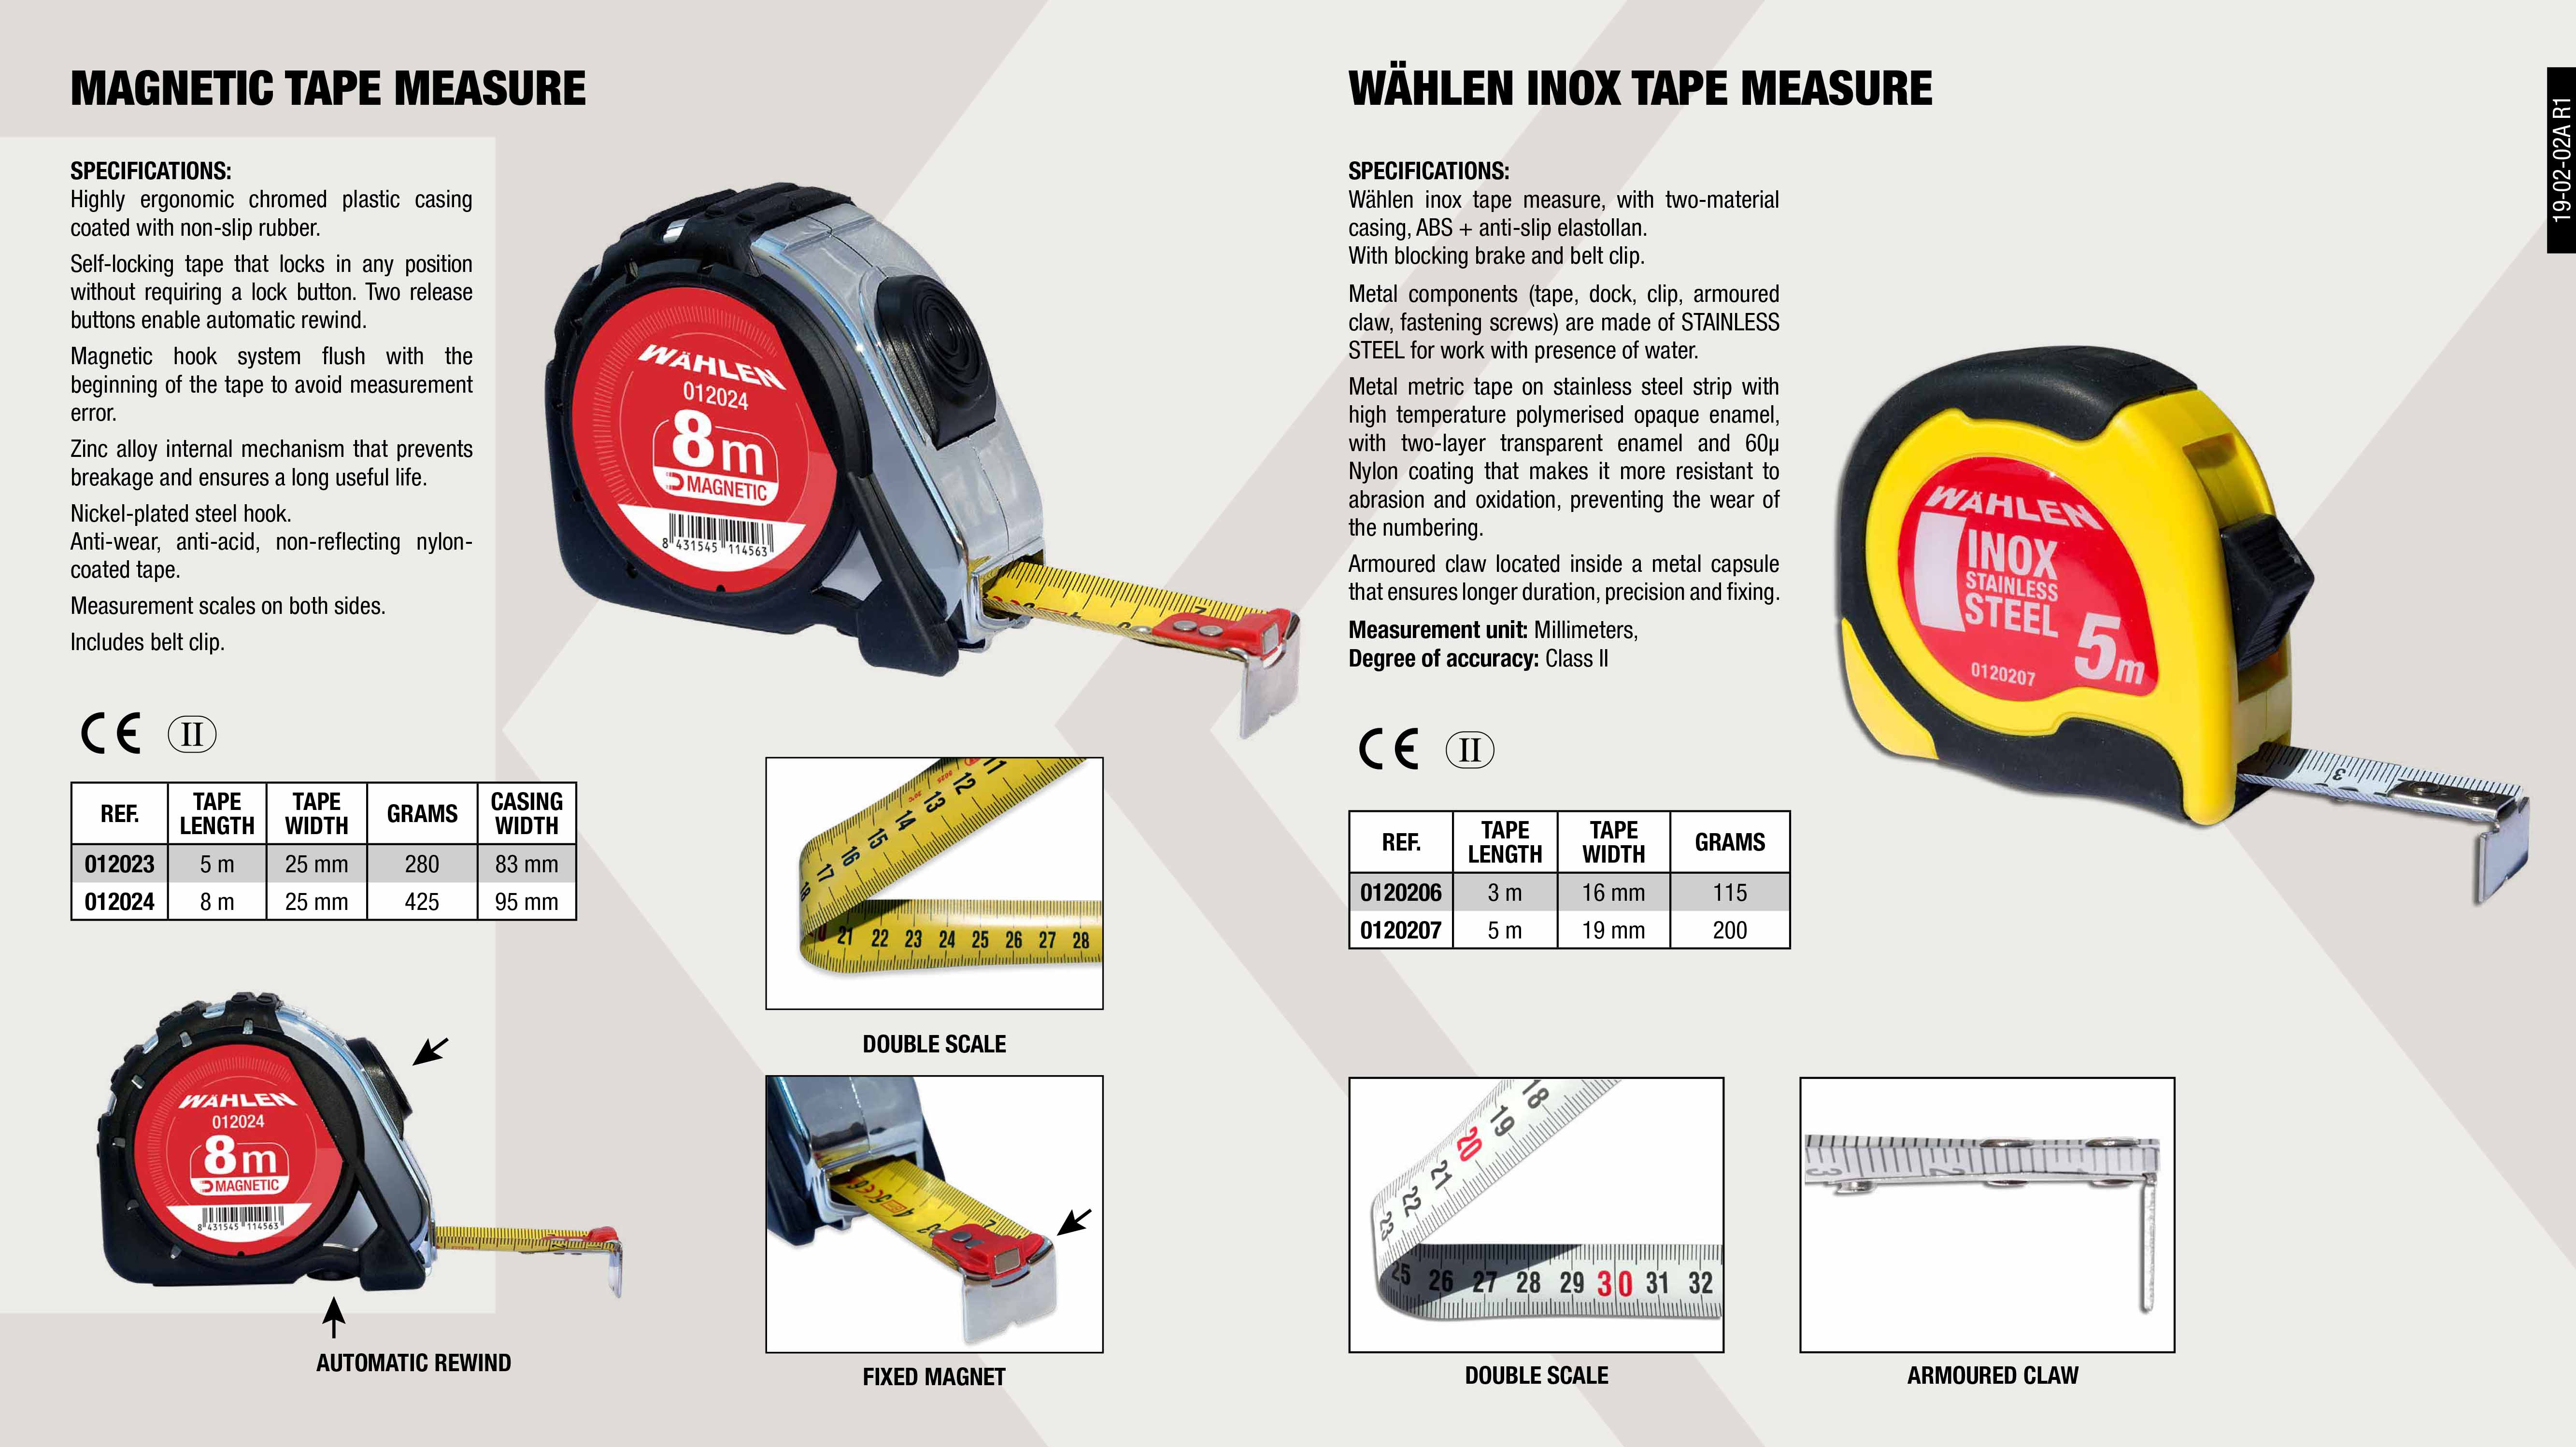 STAINLESS STEEL MEASURING TAPE 3M                           ,  									STAINLESS STEEL MEASURING TAPE 5M                           ,  									MAGNETIC MEASURING TAPE 8M                                  ,  									MAGNETIC MEASURING TAPE 5M                                  ,